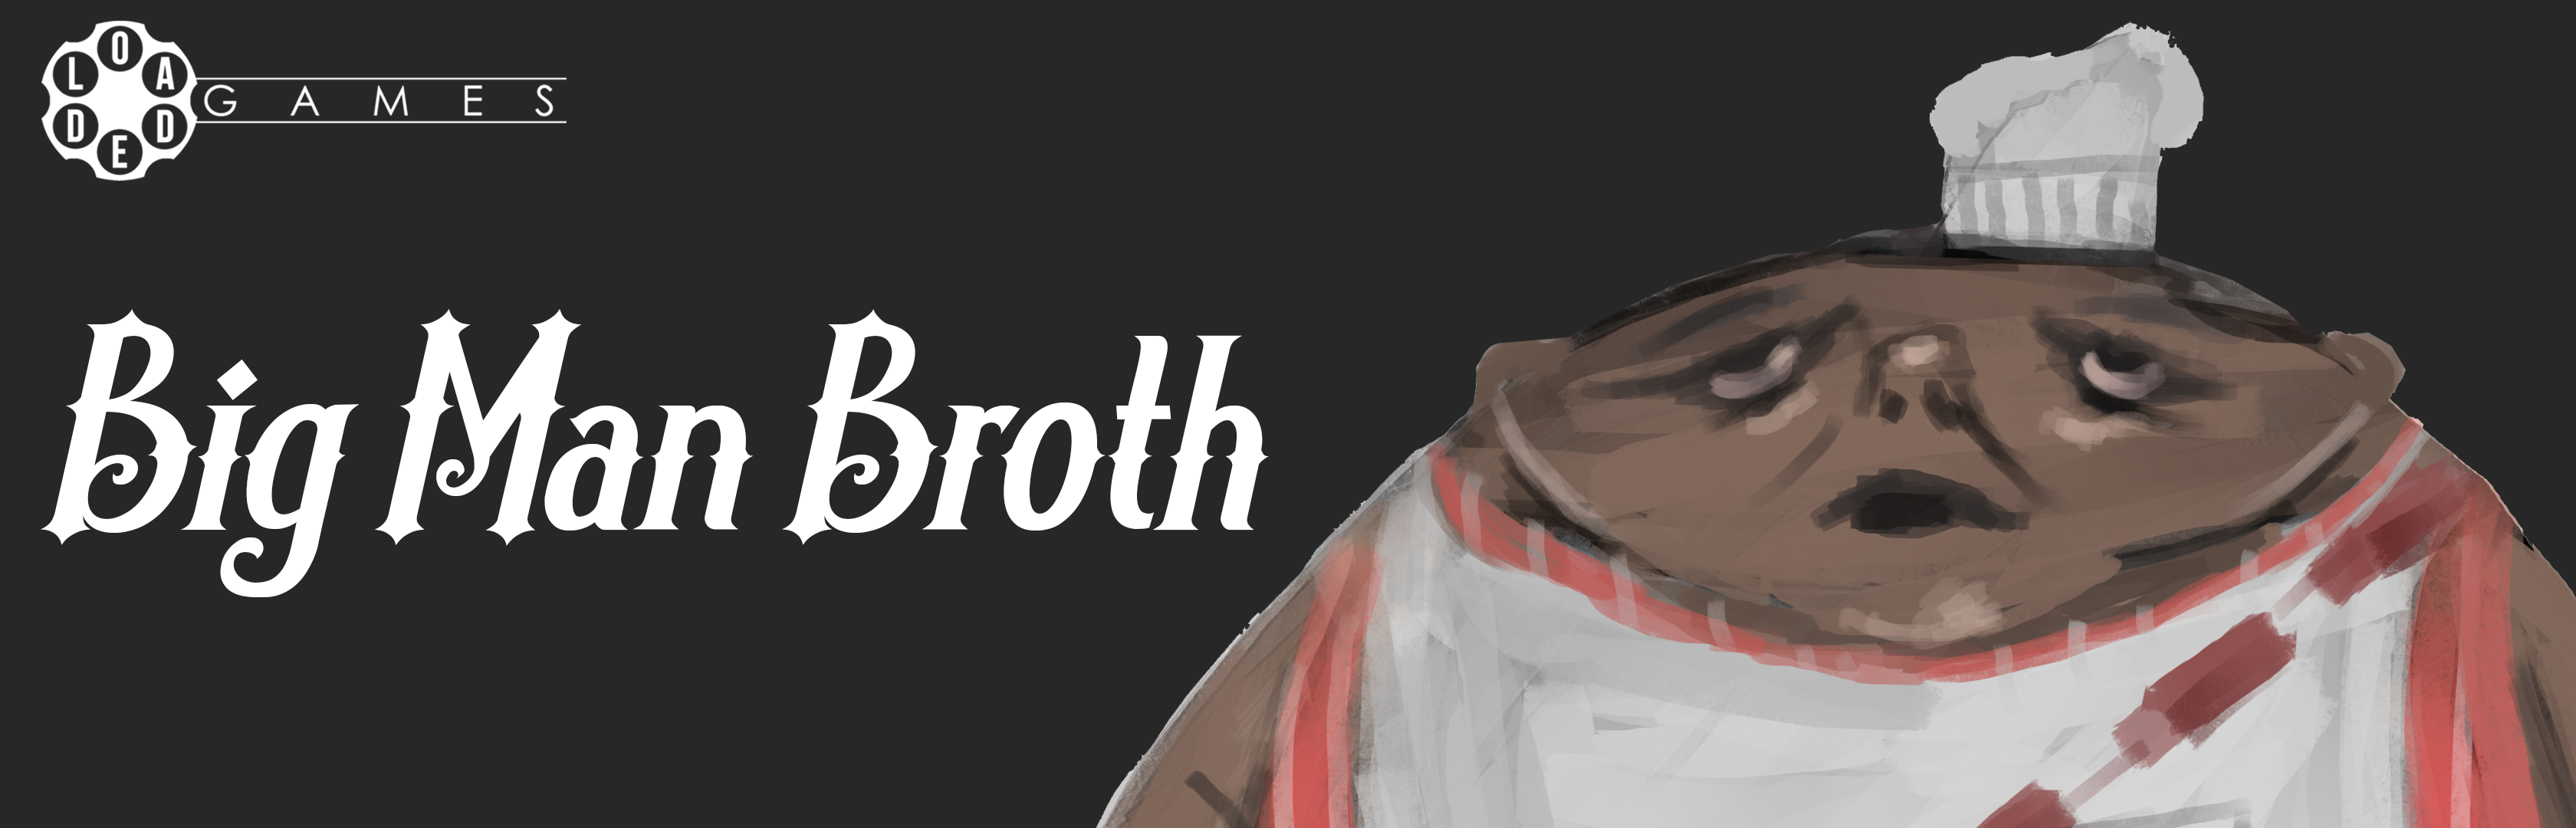 Big Man Broth